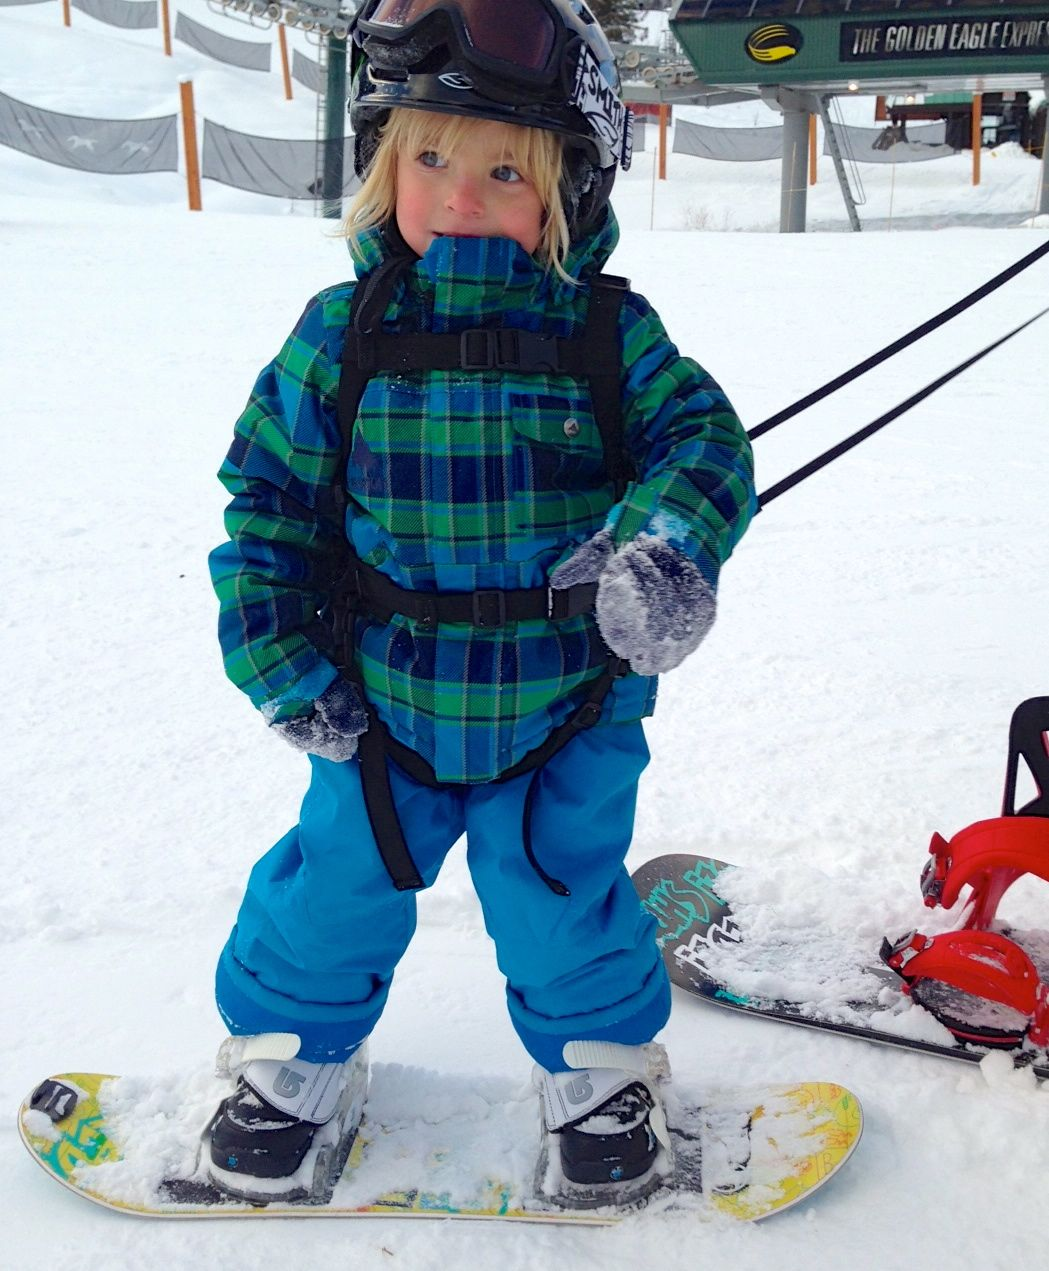 ad0e3728b Lil  rippin  riders love it too. Skier and snowboarders are all ...